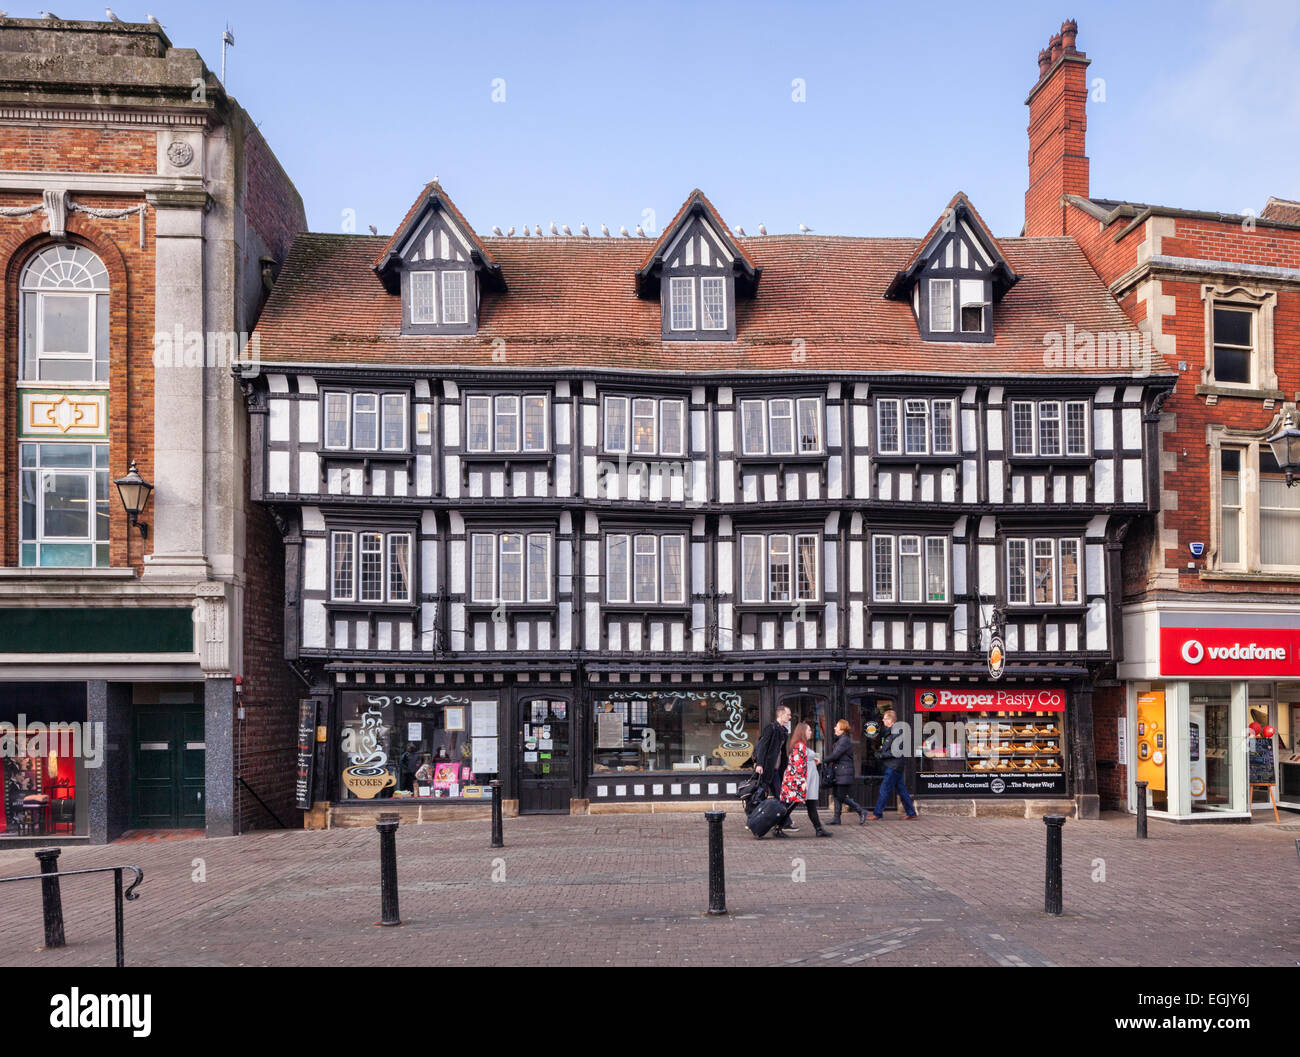 A medieval building housing shops in Lincoln High Street. - Stock Image